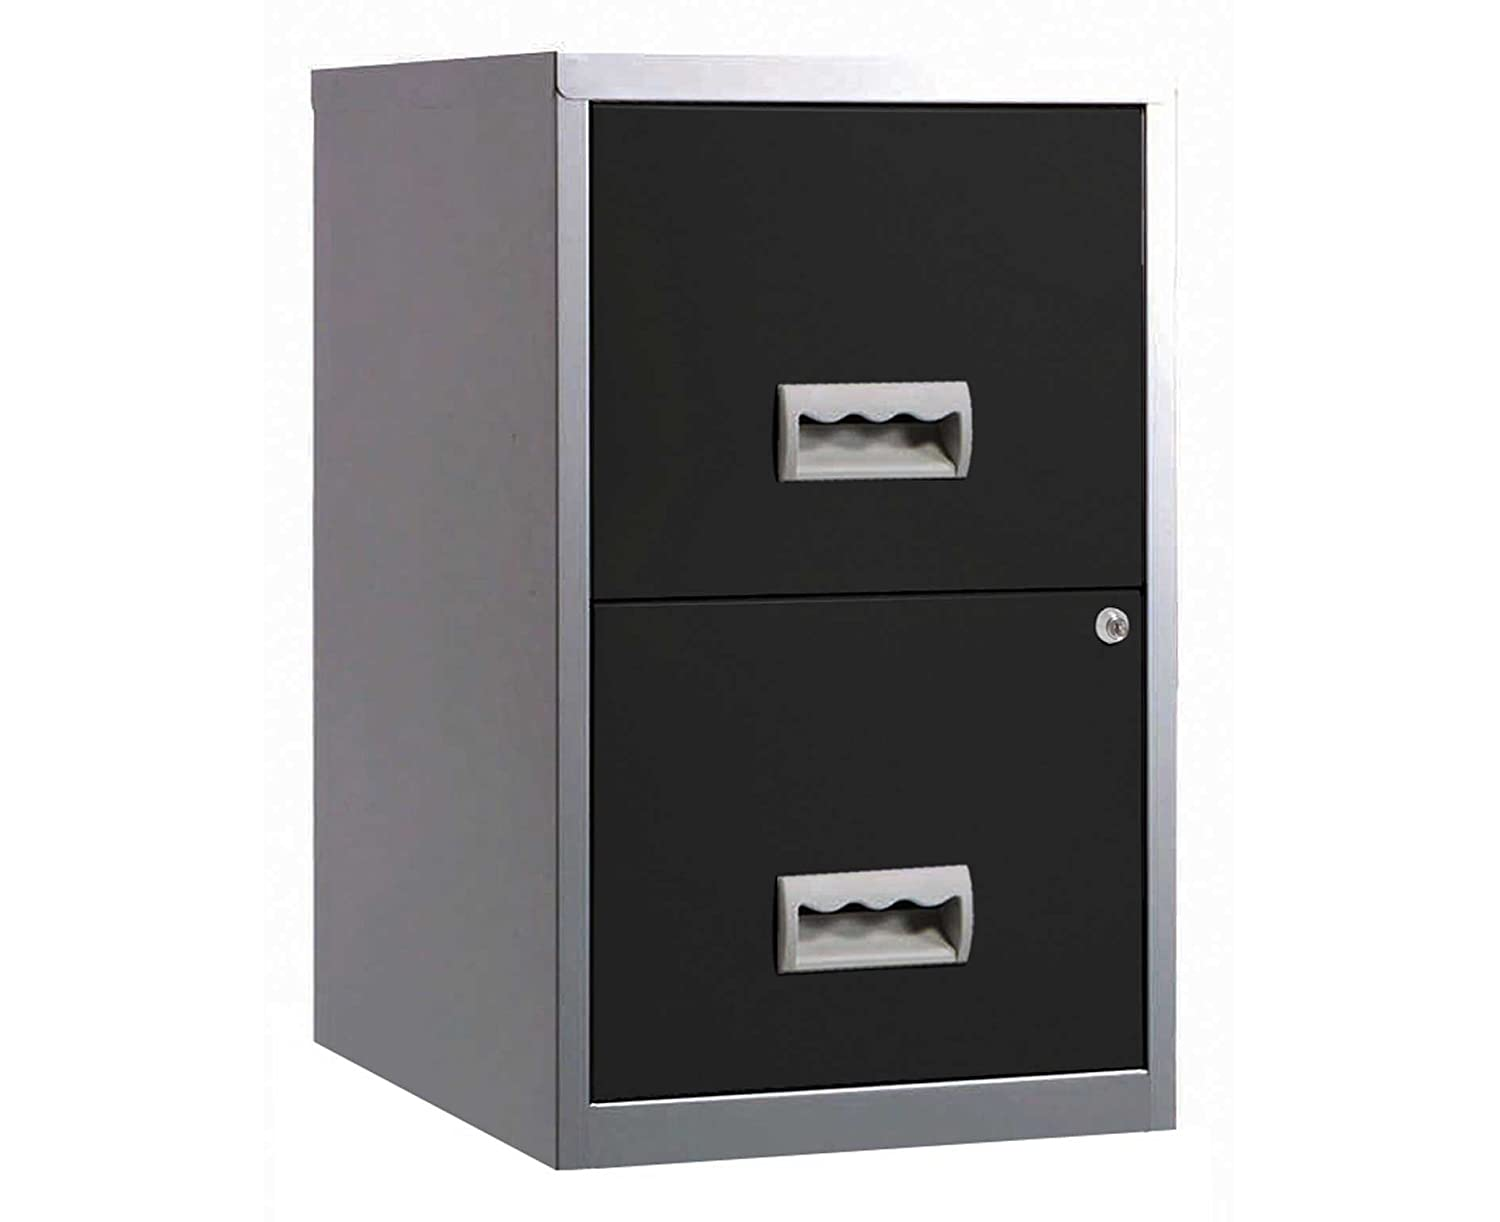 small office cabinets. Pierre Henry 2 Drawer Maxi Filing Cabinets A4 SilverBlack Small Office E